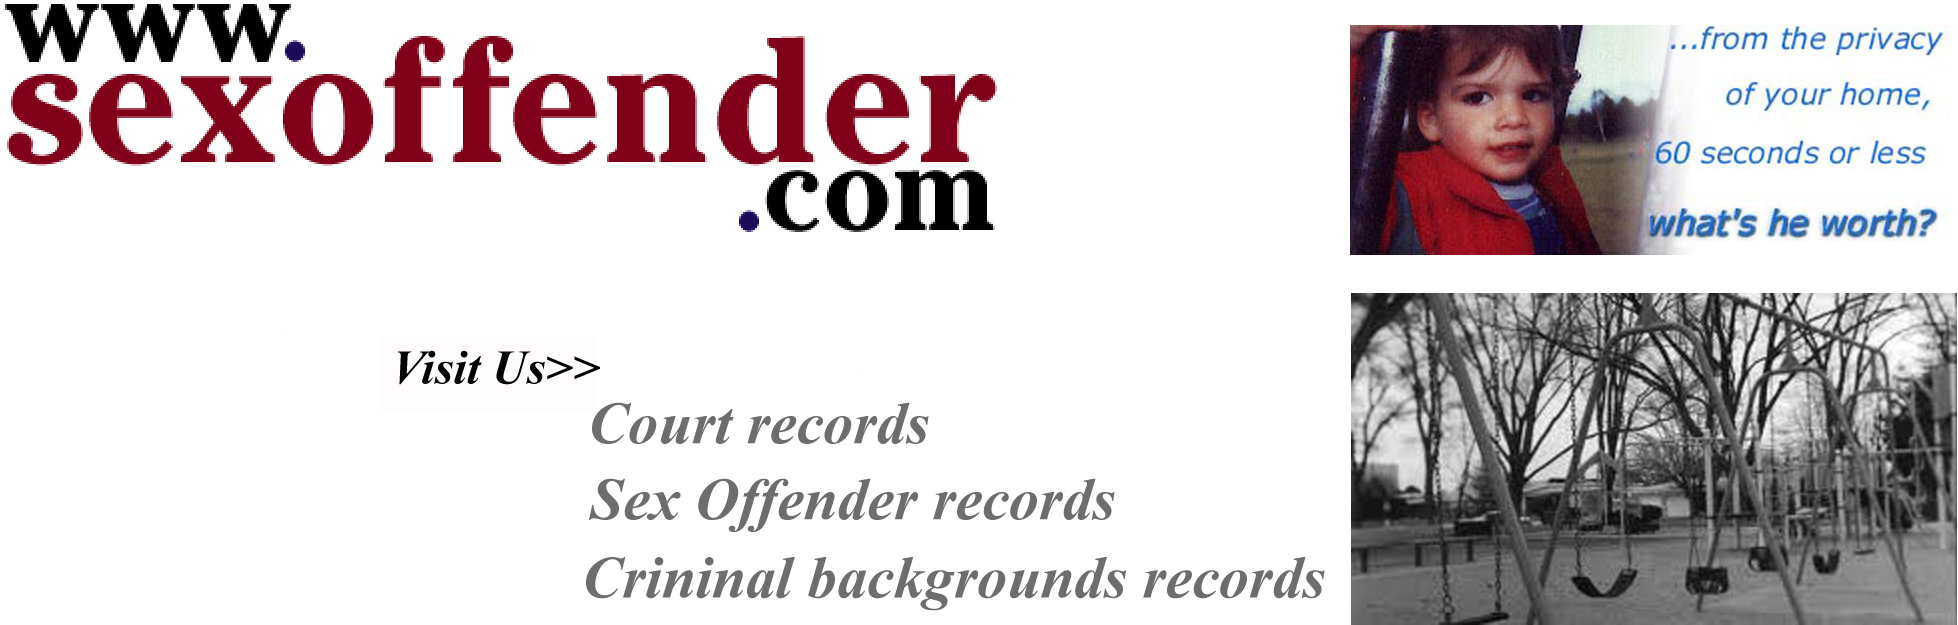 SexOffender.com criminal background records, sexual predators and child molesters identified in your neighborhood. Keep your children safe, check for predators at SexOffender.com